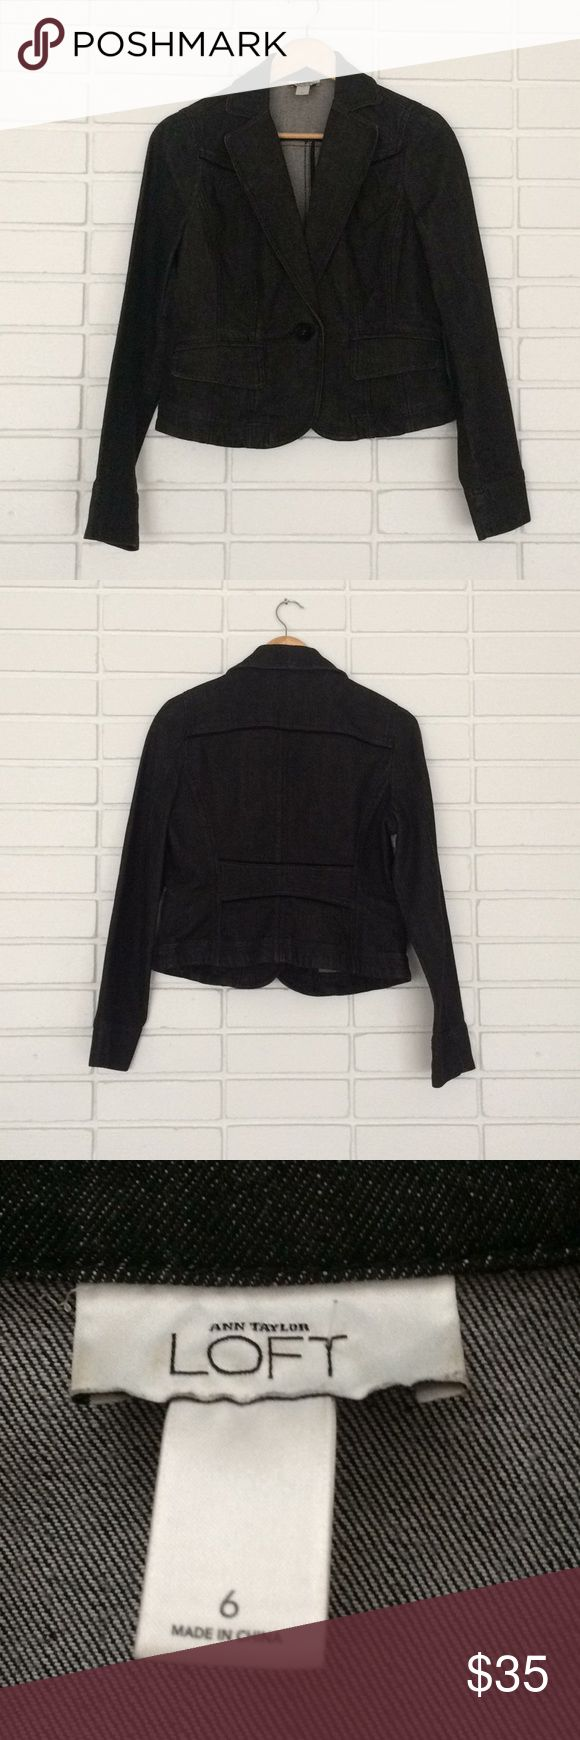 Loft Black Denim Blazer Loft Black Denim Blazer! Size 6. Excellent condition! Heavy, quality construction! Great wardrobe staple piece - would look great with a floral blouse! LOFT Jackets & Coats Blazers